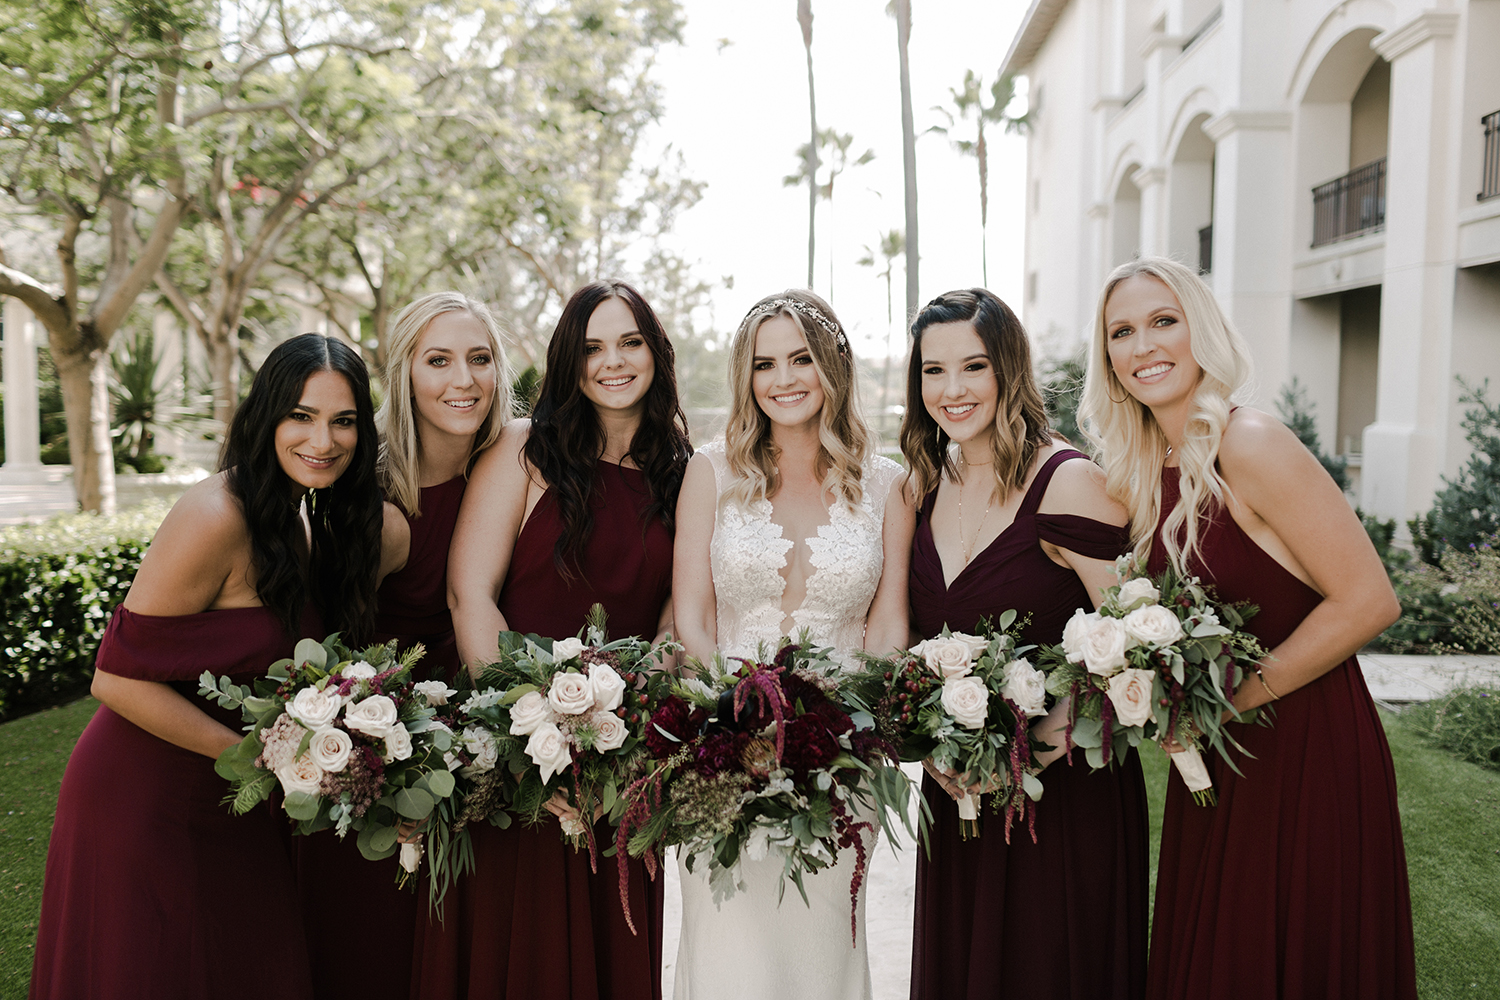 Amanda + Steven Monarch Beach Wedding // Dana Point Wedding // Lucky Day Events Co. // Morgan Hydinger Photography